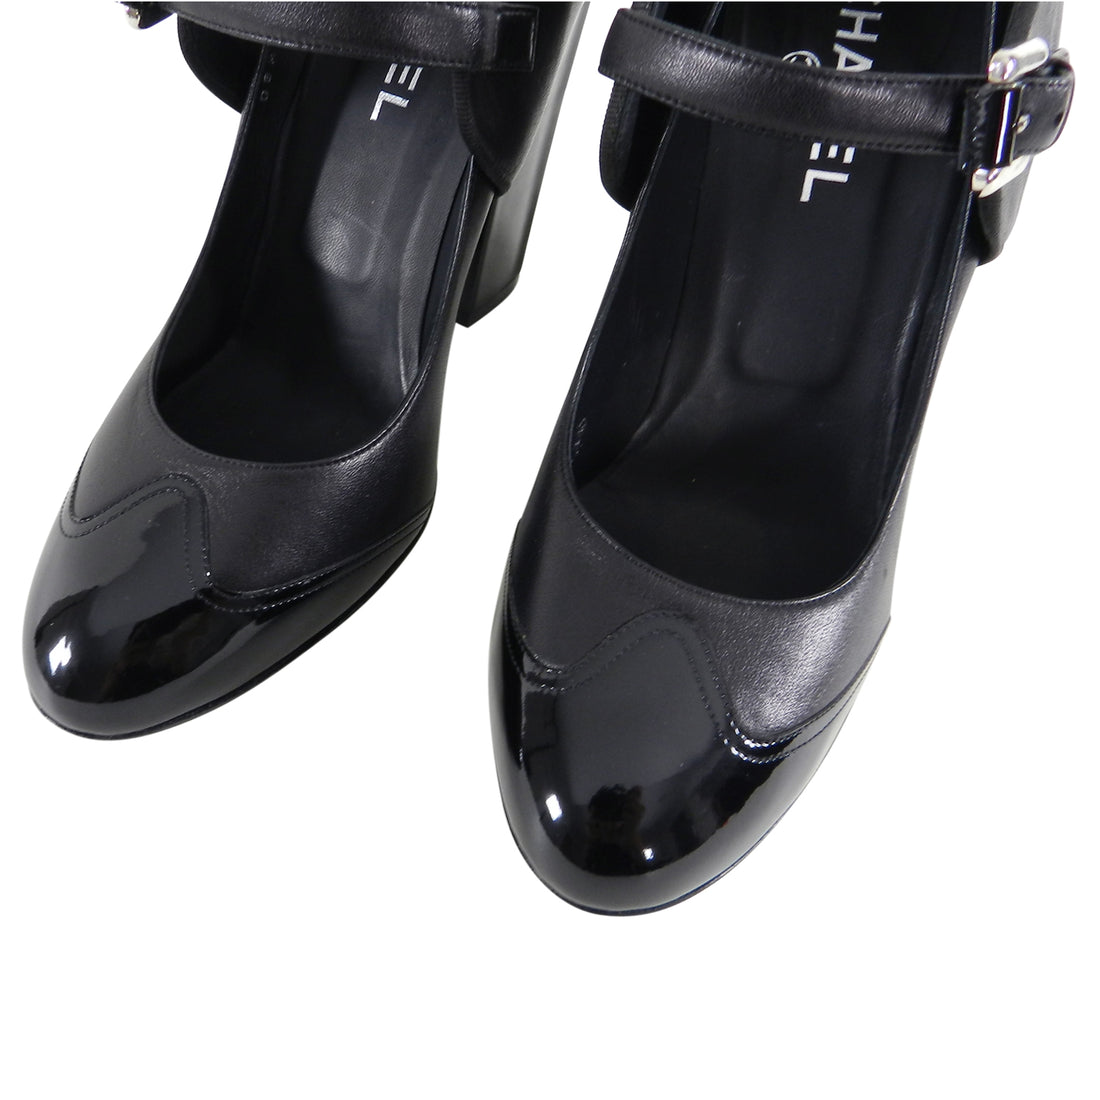 Chanel 08P Black Leather and Patent CC Mary Jane Shoes - 41